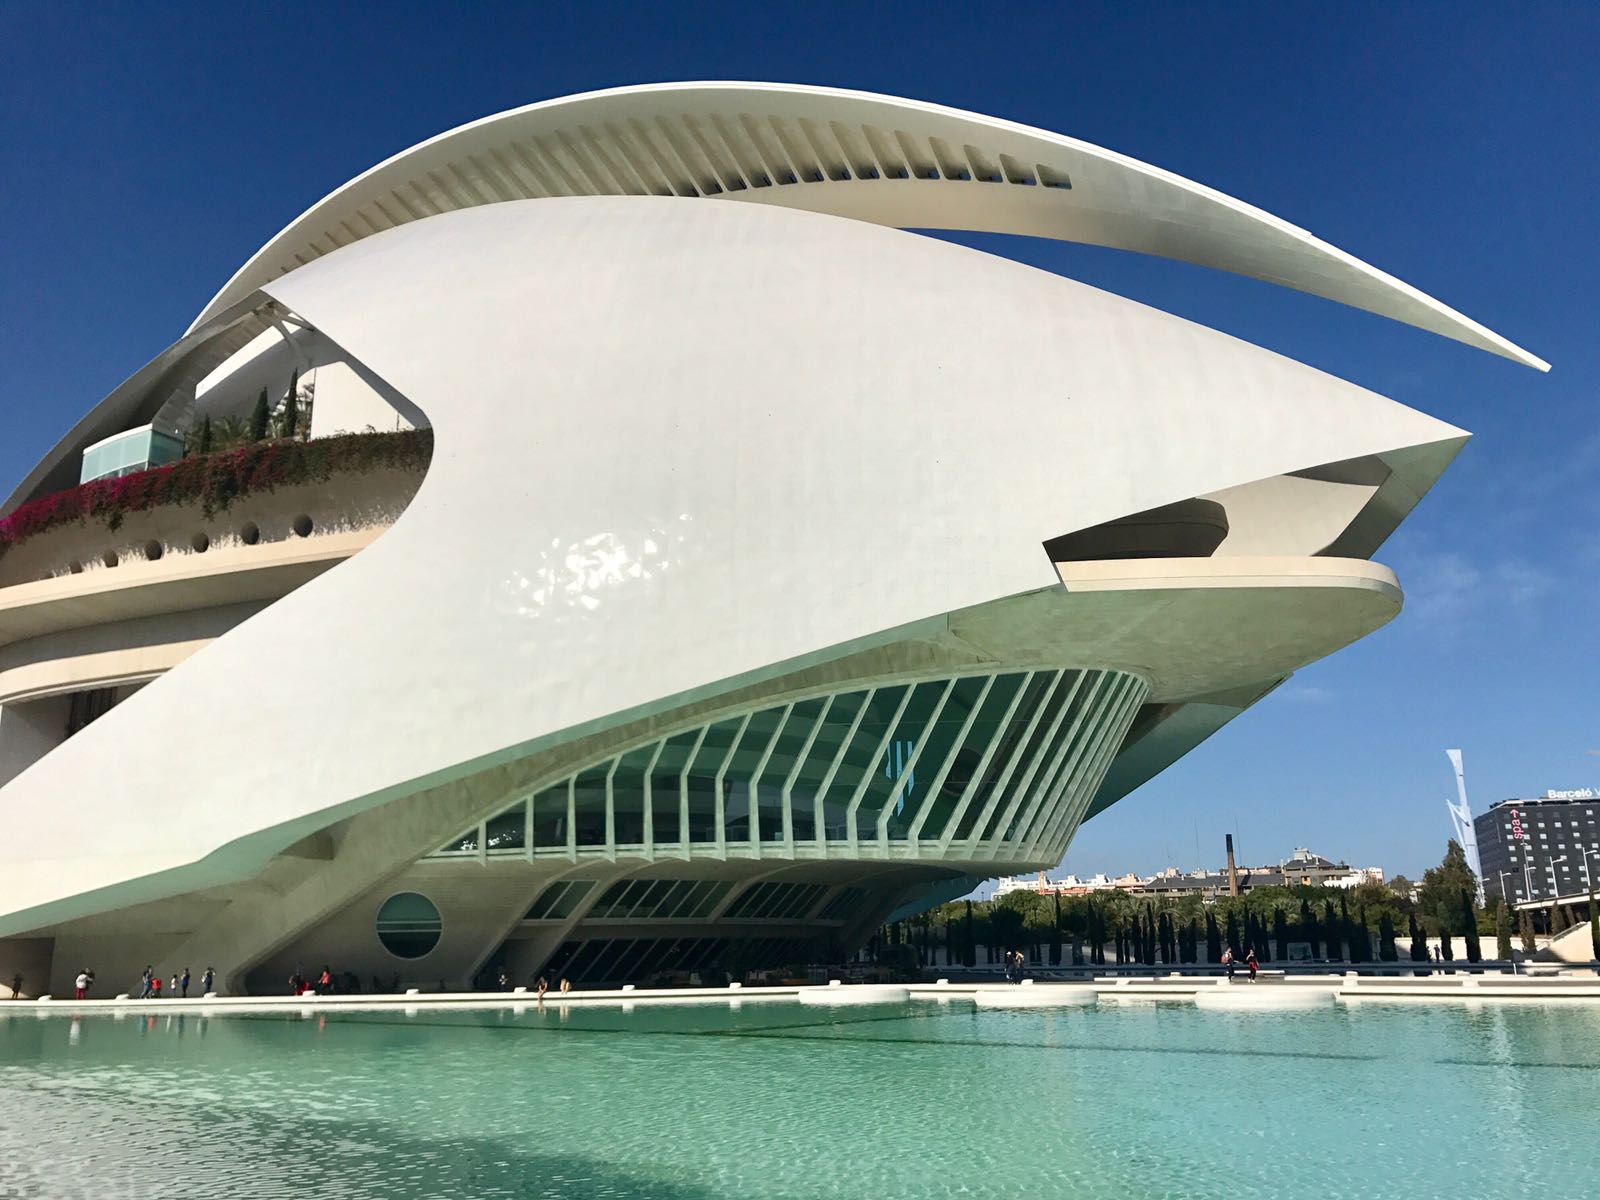 Opera Valencia showing the viewing gallery and the pool in front